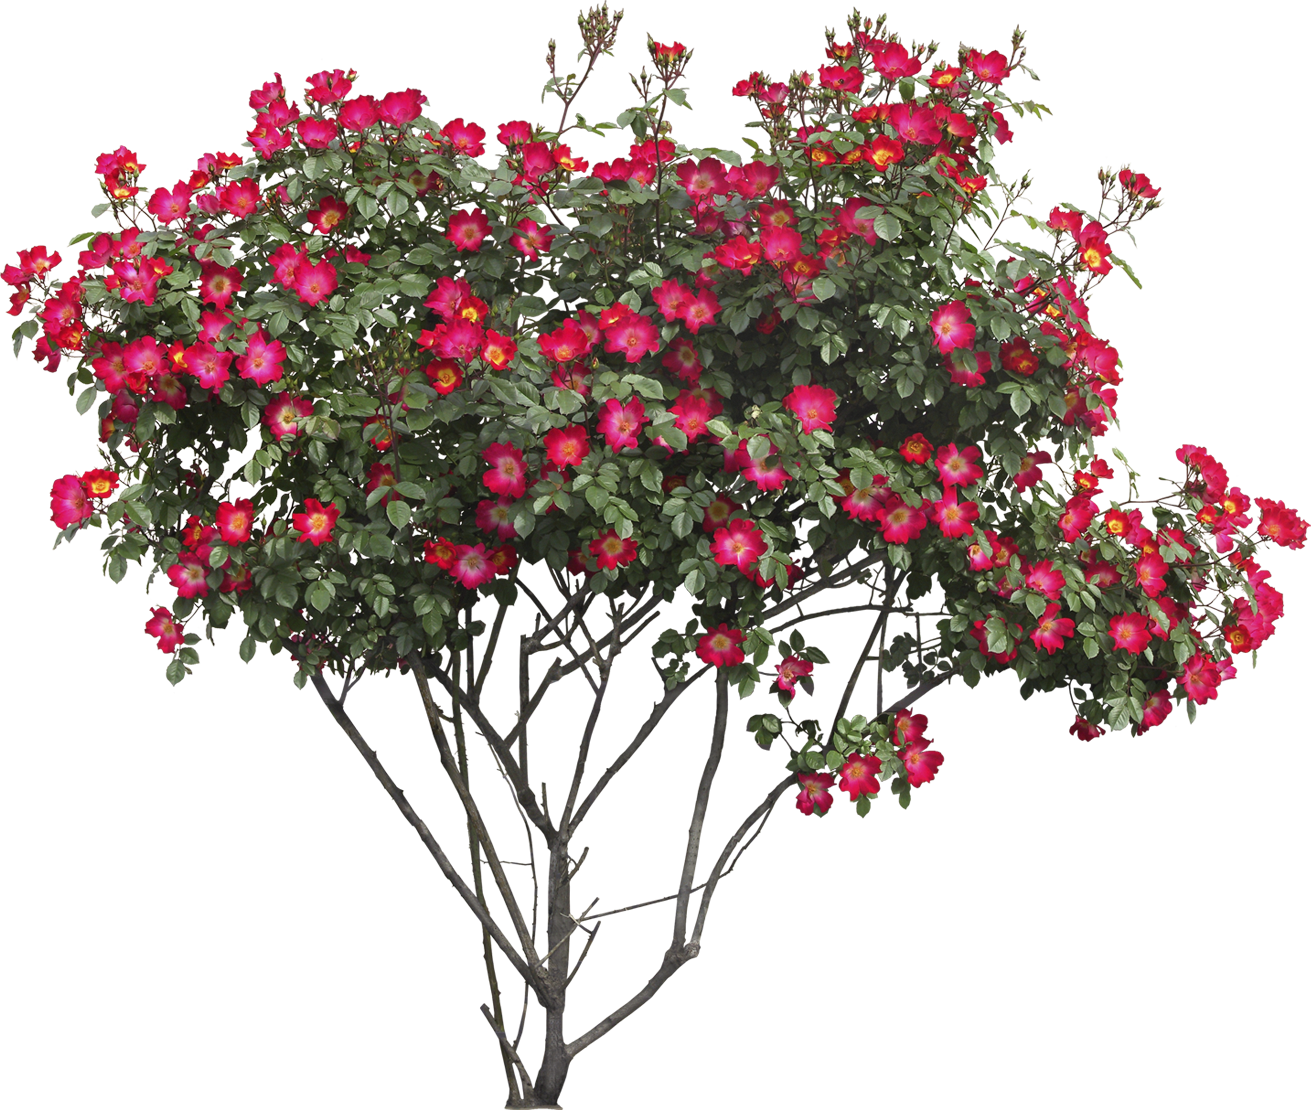 Rose clipart shrub. Bushes png images free